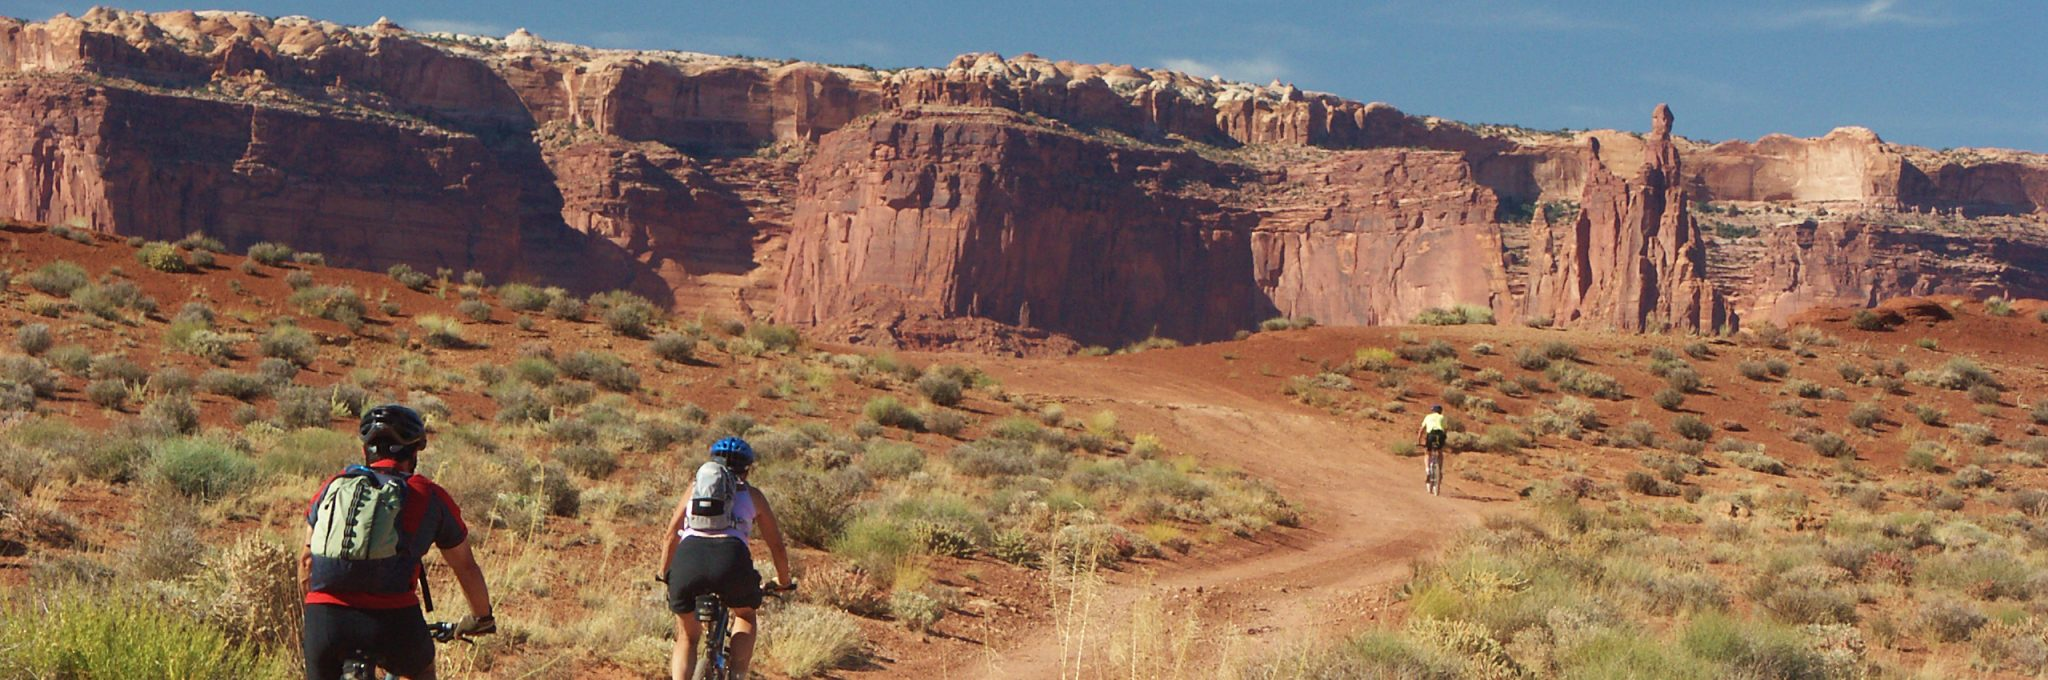 Bikers ride the White Rim Trail toward the Airport Towers campground in Island in the Sky District, Canyonlands NP